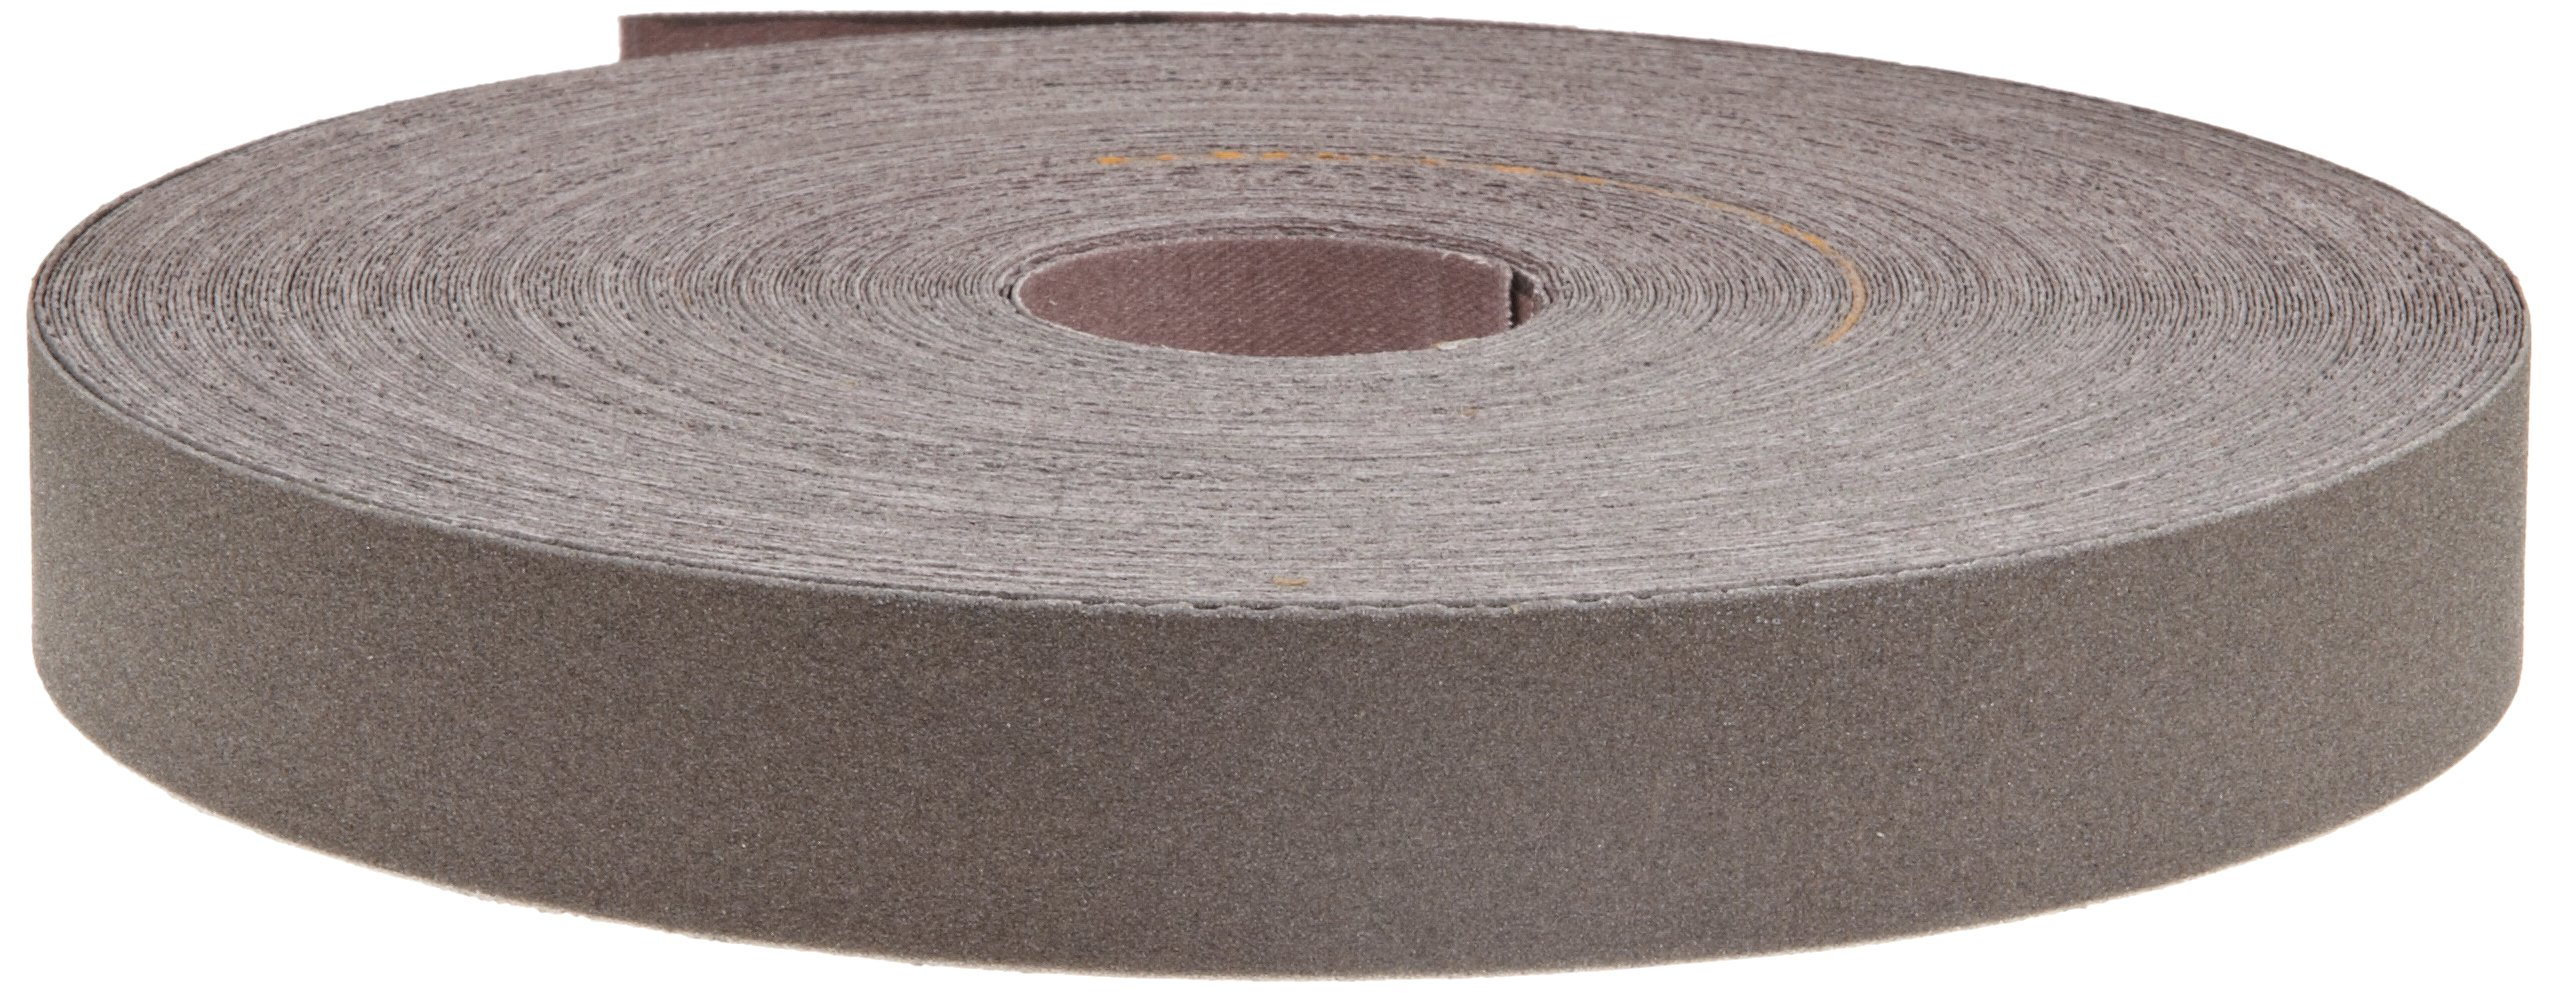 3M Utility Cloth Roll 211K, Aluminum Oxide, 1'' Width x 50yd Length, 180 Grit (Pack of 1)